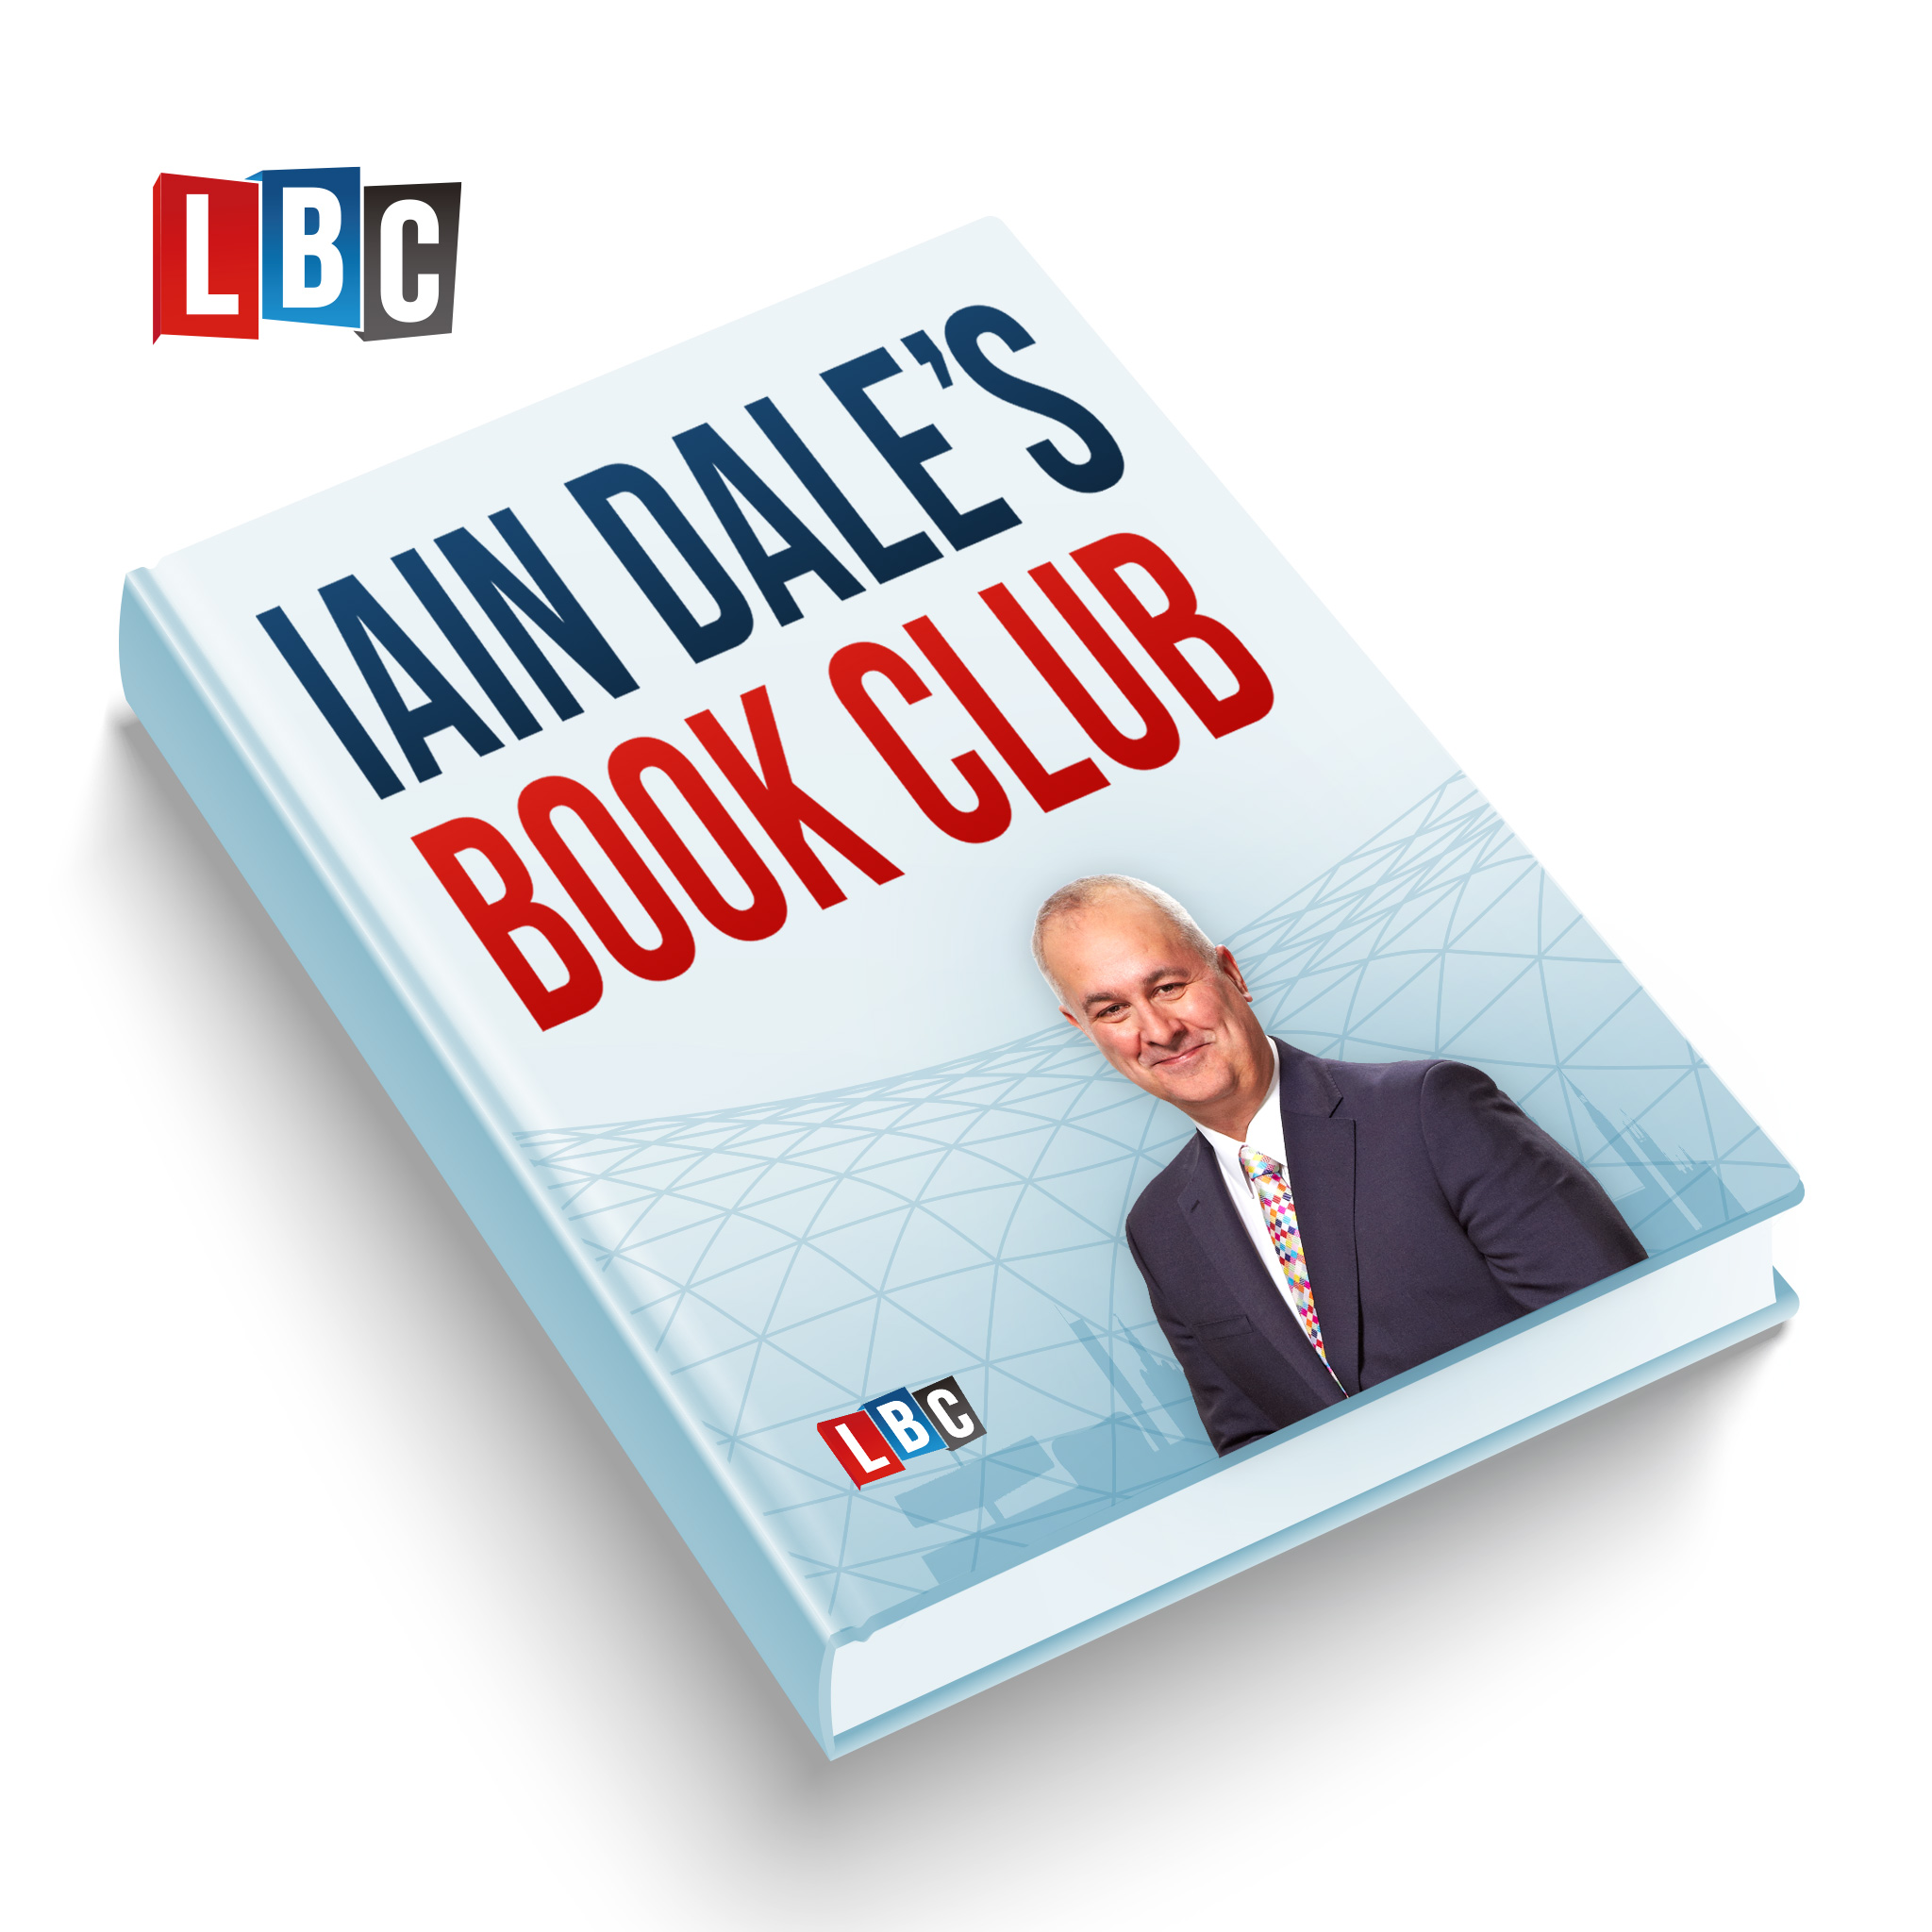 Chapter 10 : Giles And Mary From Gogglebox Iain Dale's Book Club podcast